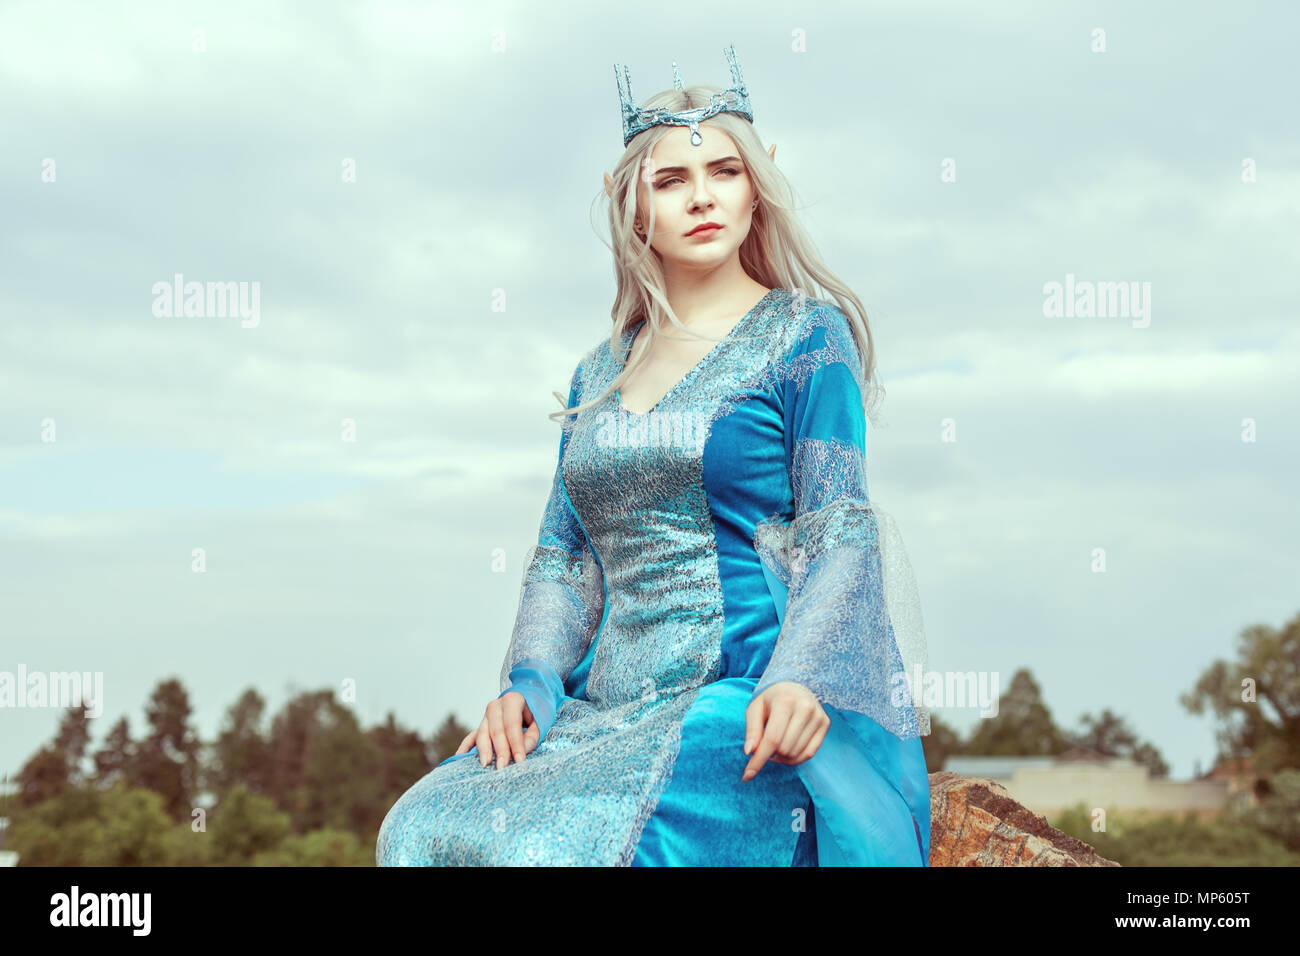 Beautiful elf woman in a blue dress sitting on top. - Stock Image